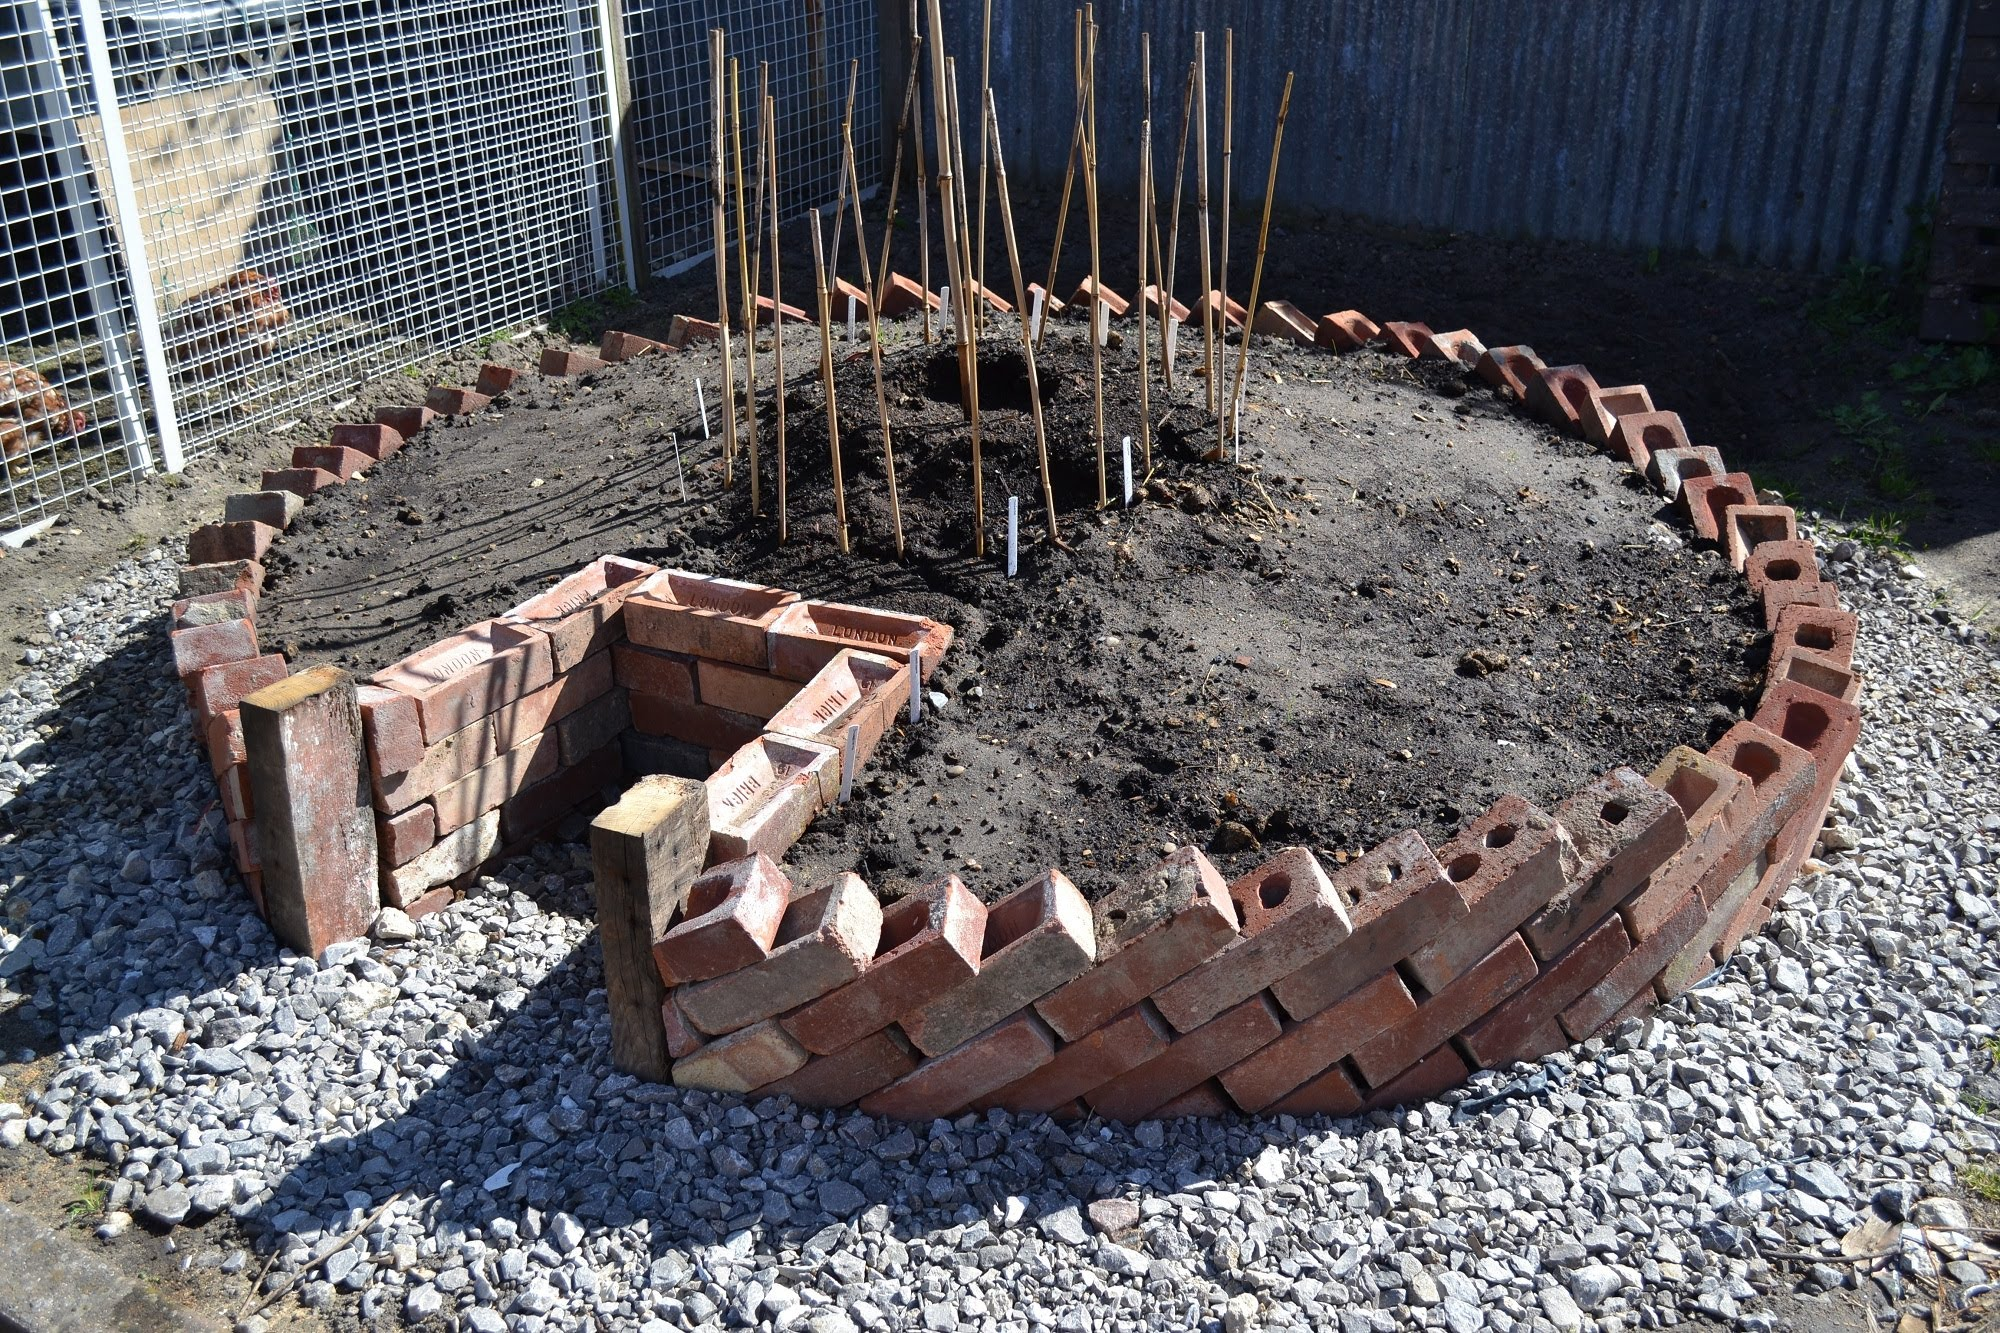 How To Build A Keyhole Garden / Raised Bed Vegetable Patch...